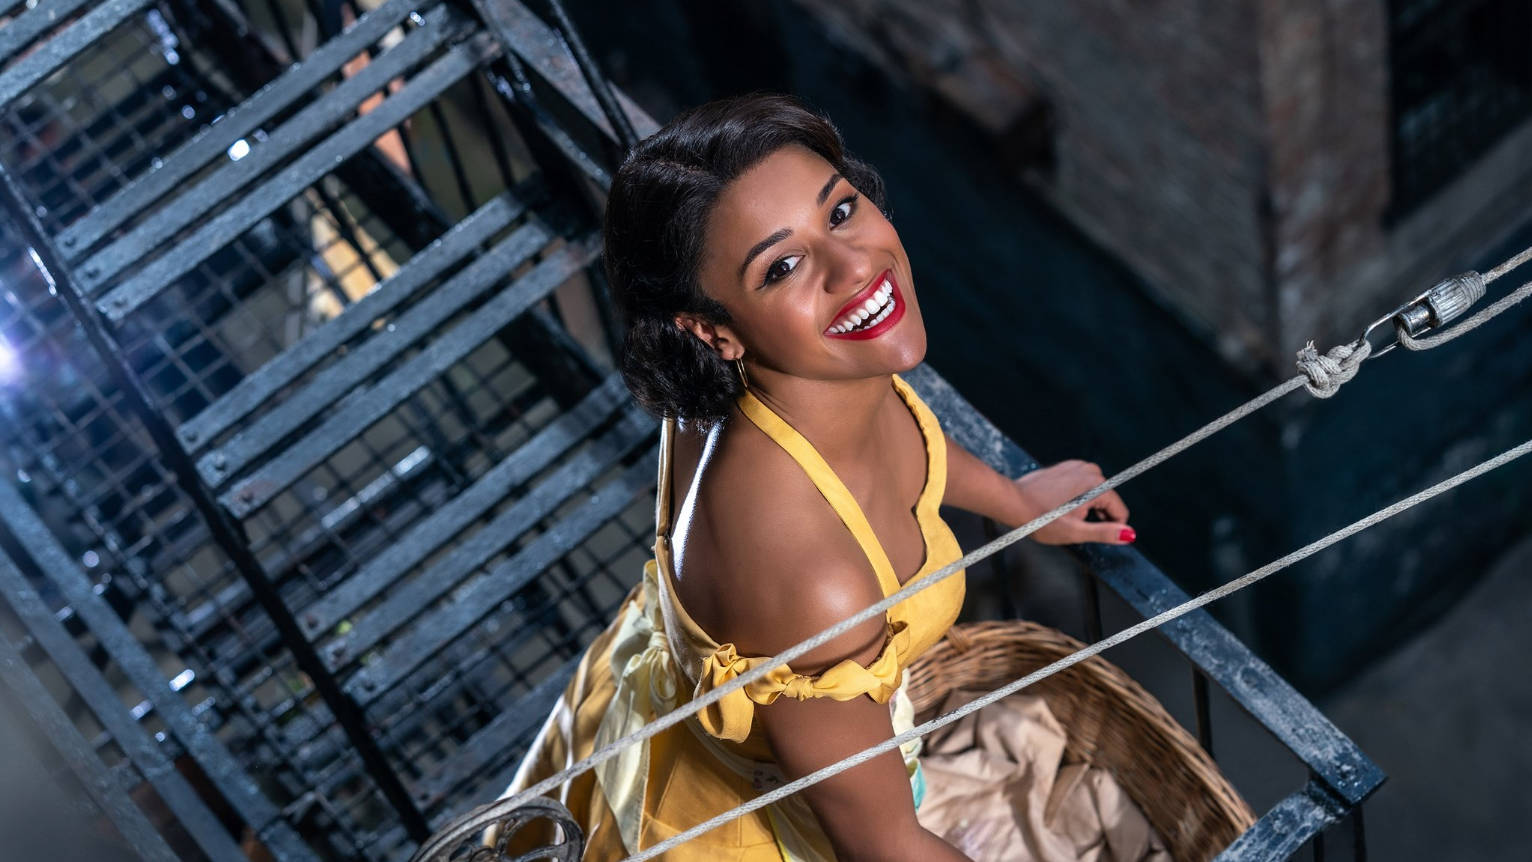 First look at Steven Spielberg's 'West Side Story' with Ariana DeBose playing Anita